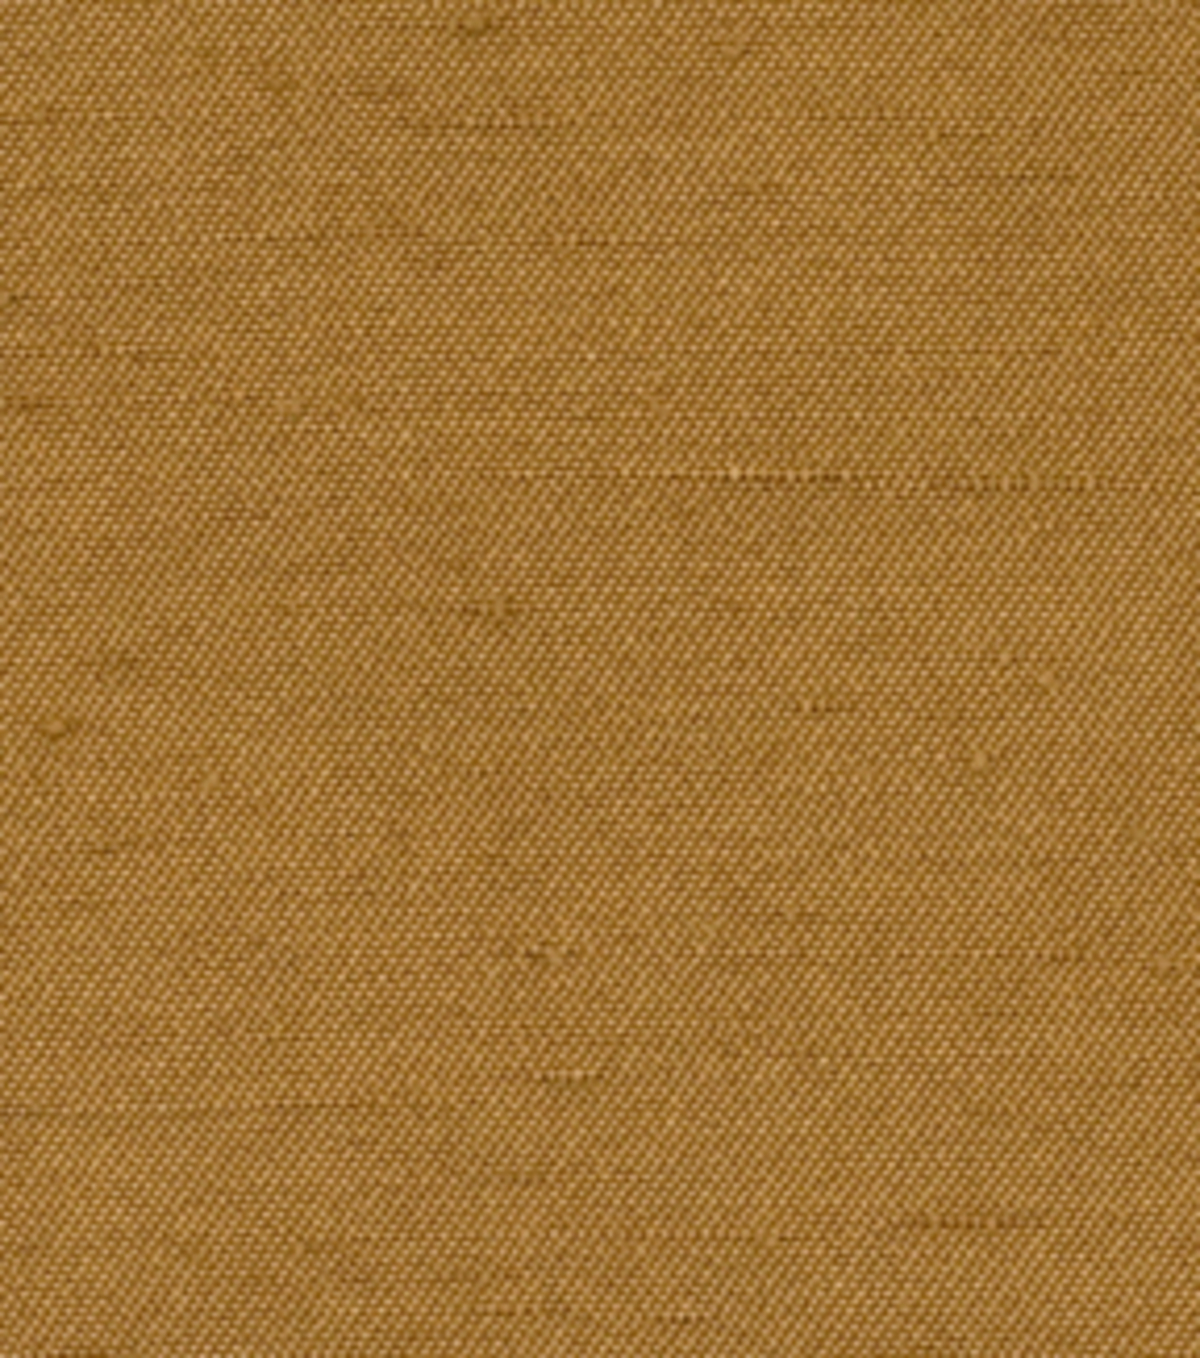 Home Decor 8\u0022x8\u0022 Fabric Swatch-Signature Series Antique Satin Autumn